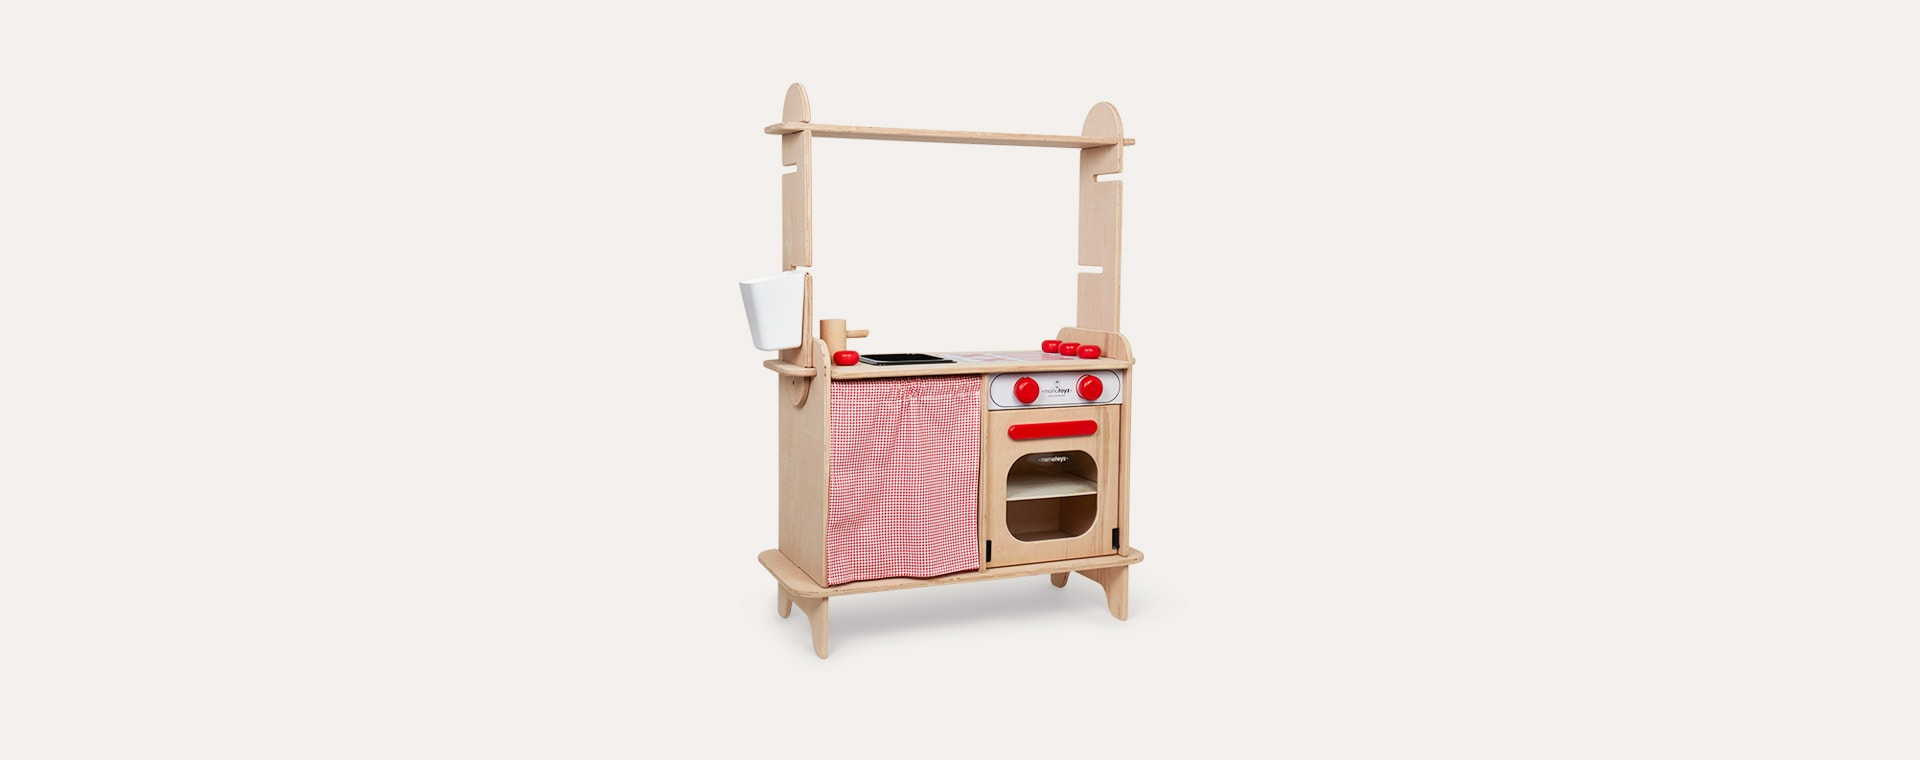 Neutral Mamatoyz Sera Wooden Kitchen